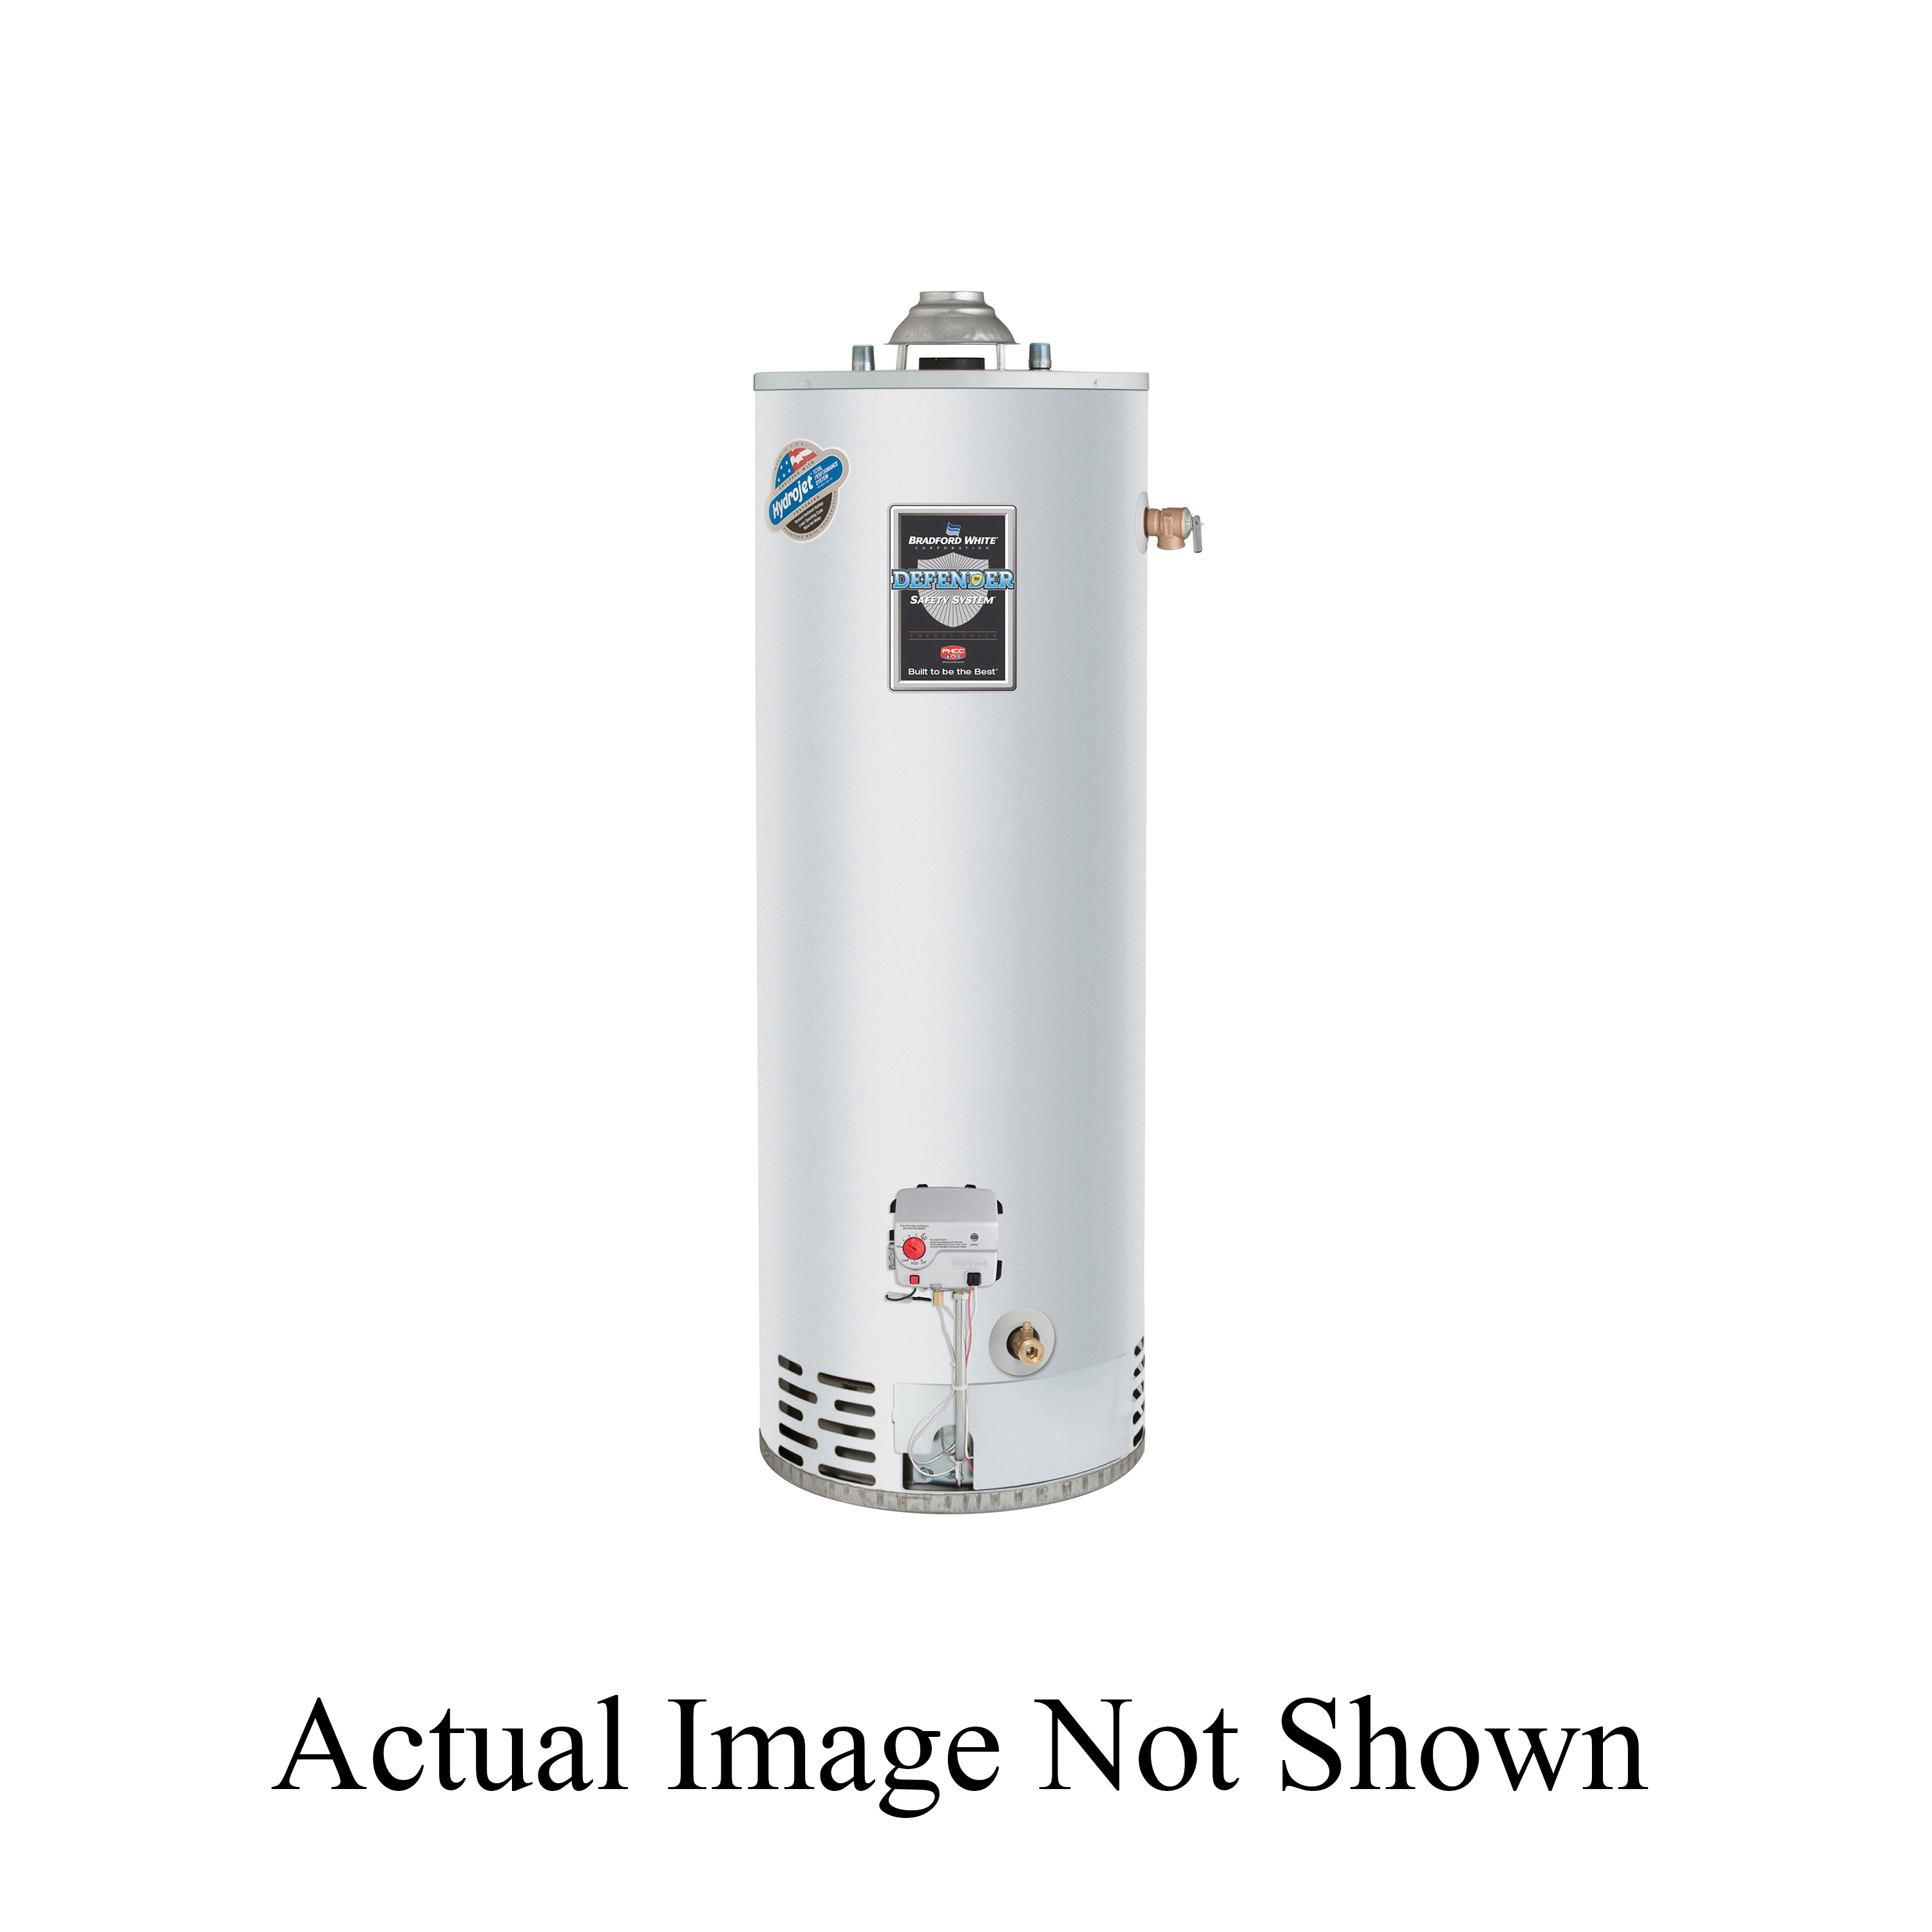 Bradford White Defender Safety System RG130T6N-394 Gas Water Heater, 27000 Btu/hr Heating, 30 gal Tank, Natural Gas Fuel, Atmospheric Vent